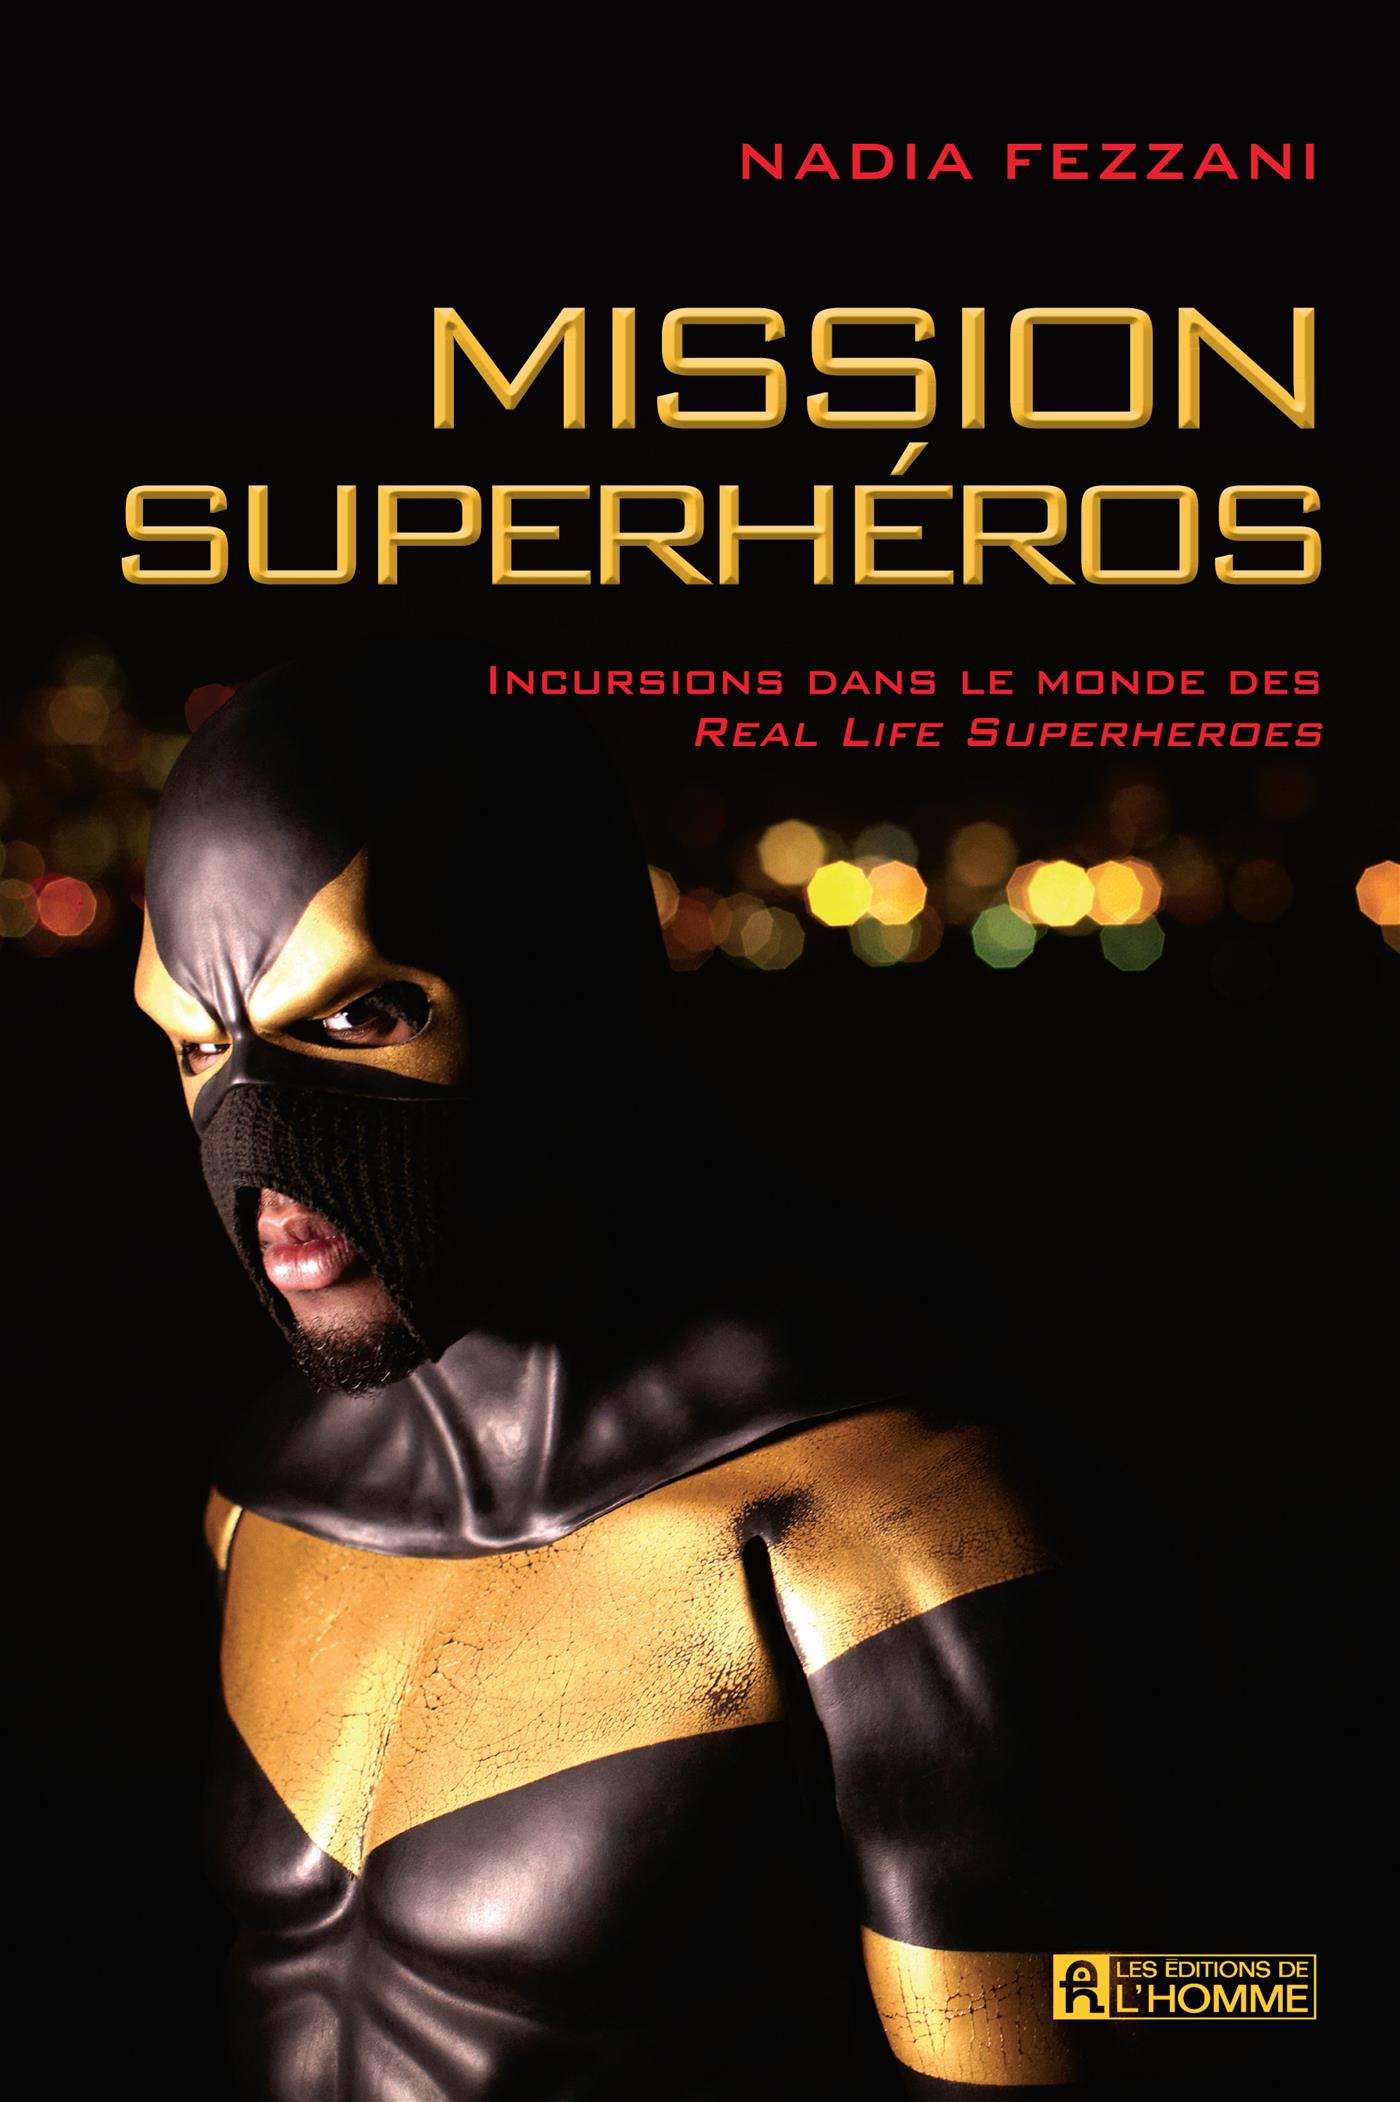 Mission superhéros